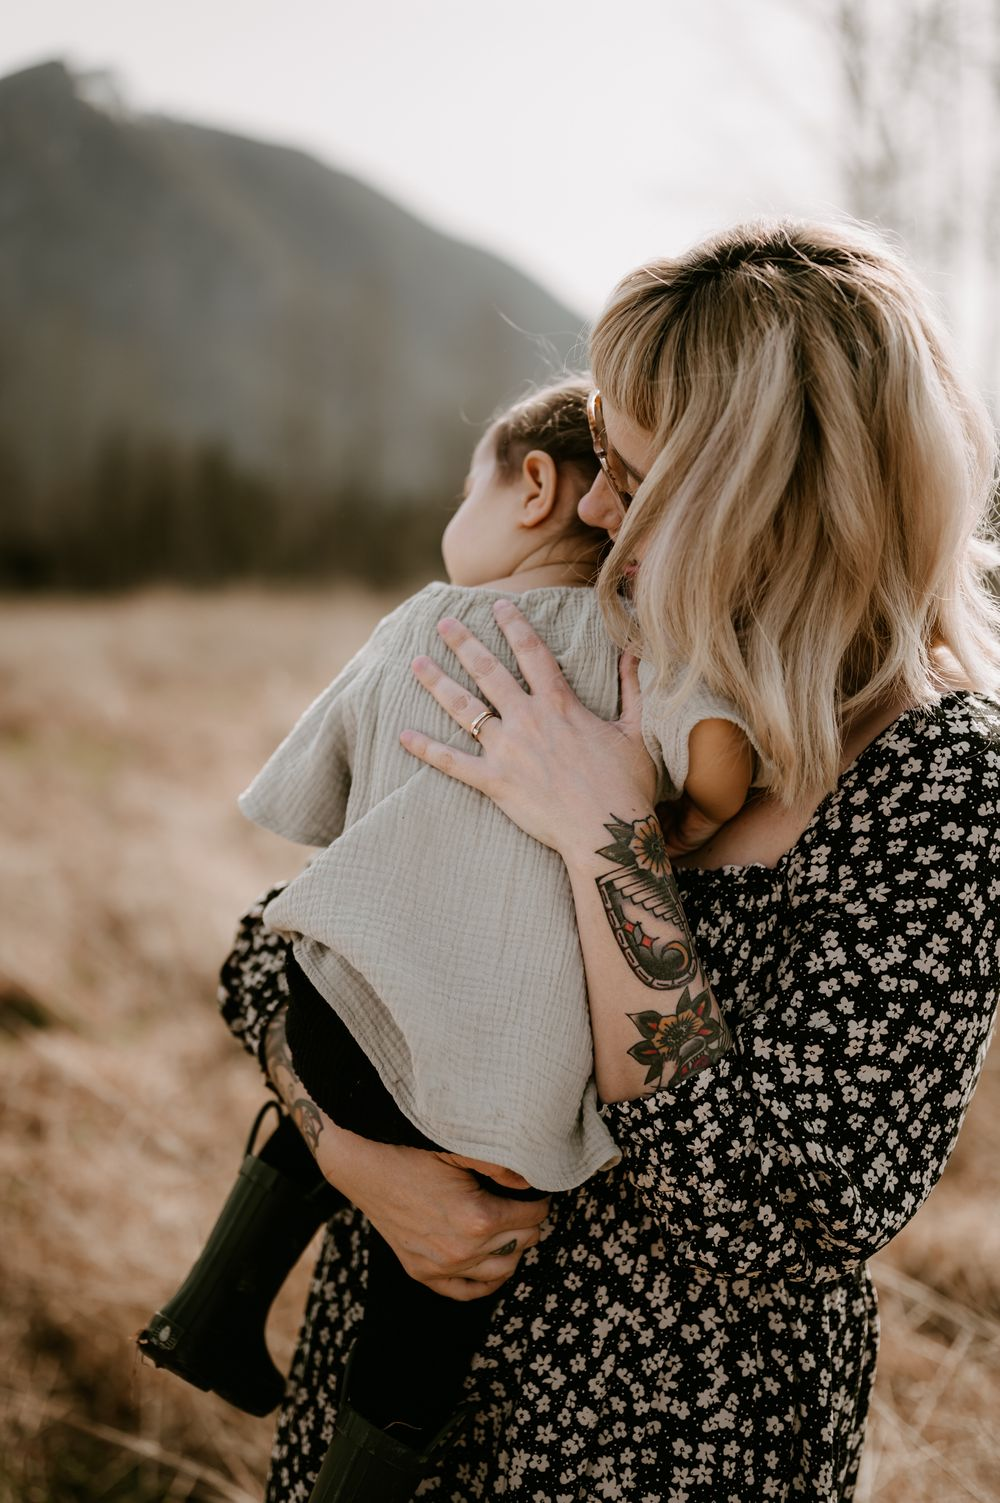 motherhood portrait by Tiffany Kelterer of mom holding and snuggling daughter in Snoqualmie WA